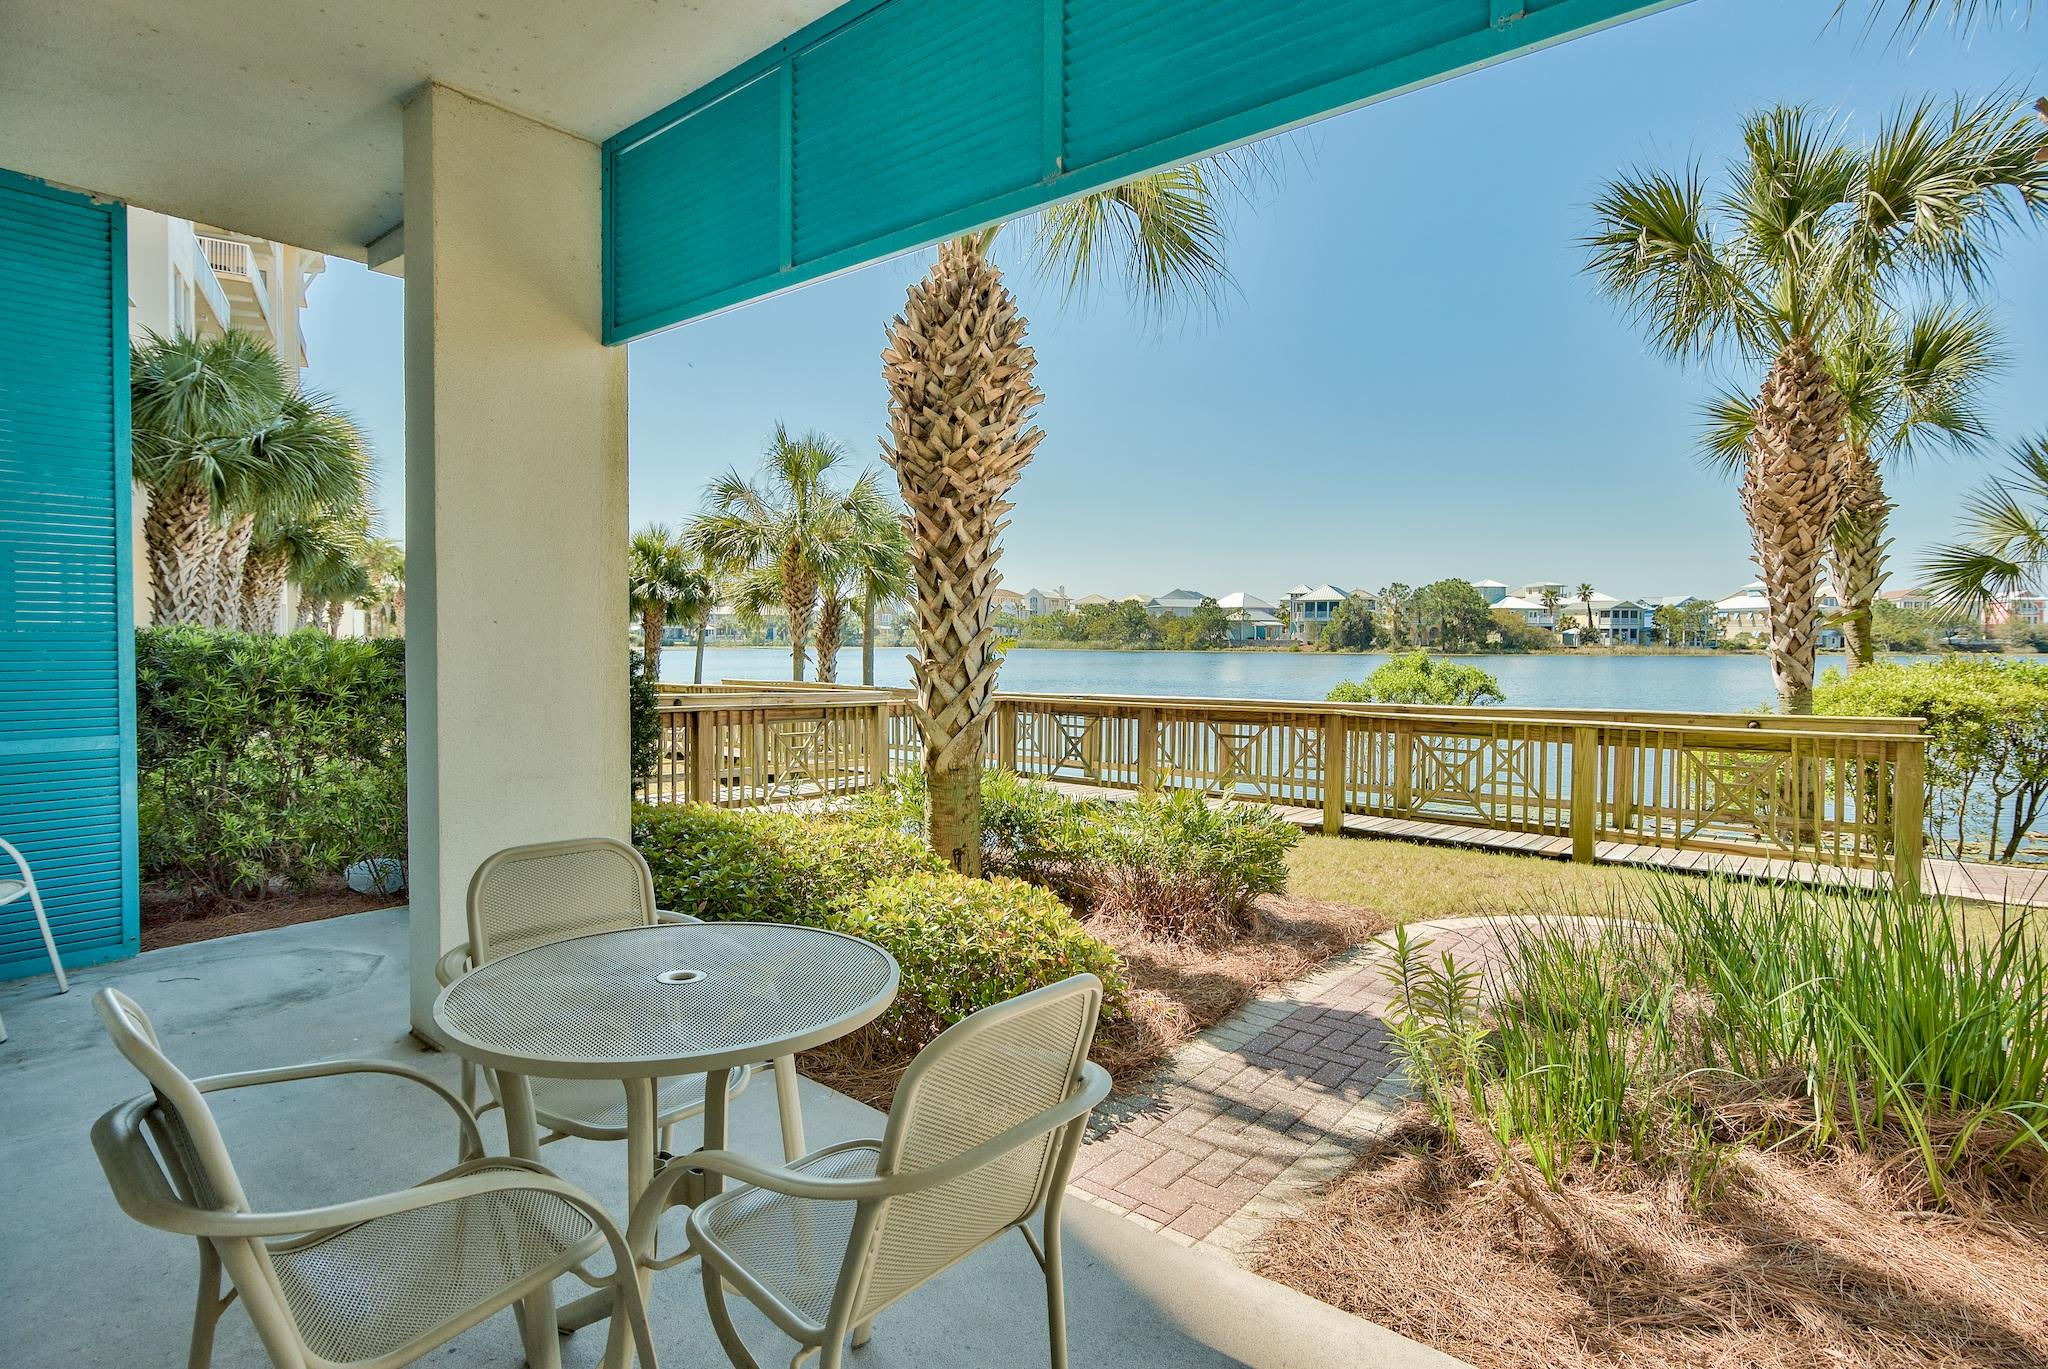 Don't' Miss this!  Large Ground Floor End Unit, Lakefront, Expanded Patio and Gas Log Fireplace!   Wow!  Carillon amenities include resort pools (one beachfront and one exclusively for condo owners), multiple beach accesses with 3900 feet of deeded beach front, tennis courts, basketball court, plus the 13 acre Lake Carillon that has a lovely pier. This Lake front unit has direct access  (no elevators) to all that Carillon has to offer. The kitchen includes refrigerator, cooktop, sink, dishwasher, and full breakfast bar.  Carillon Beach Inn is ideally located near famed Rosemary and Alys Beach, as well as all Highway 30-A has to offer.   It is also in close proximity to Pier Park Shopping and Panama City Beach International Airport.  Great turnkey vacation rental.